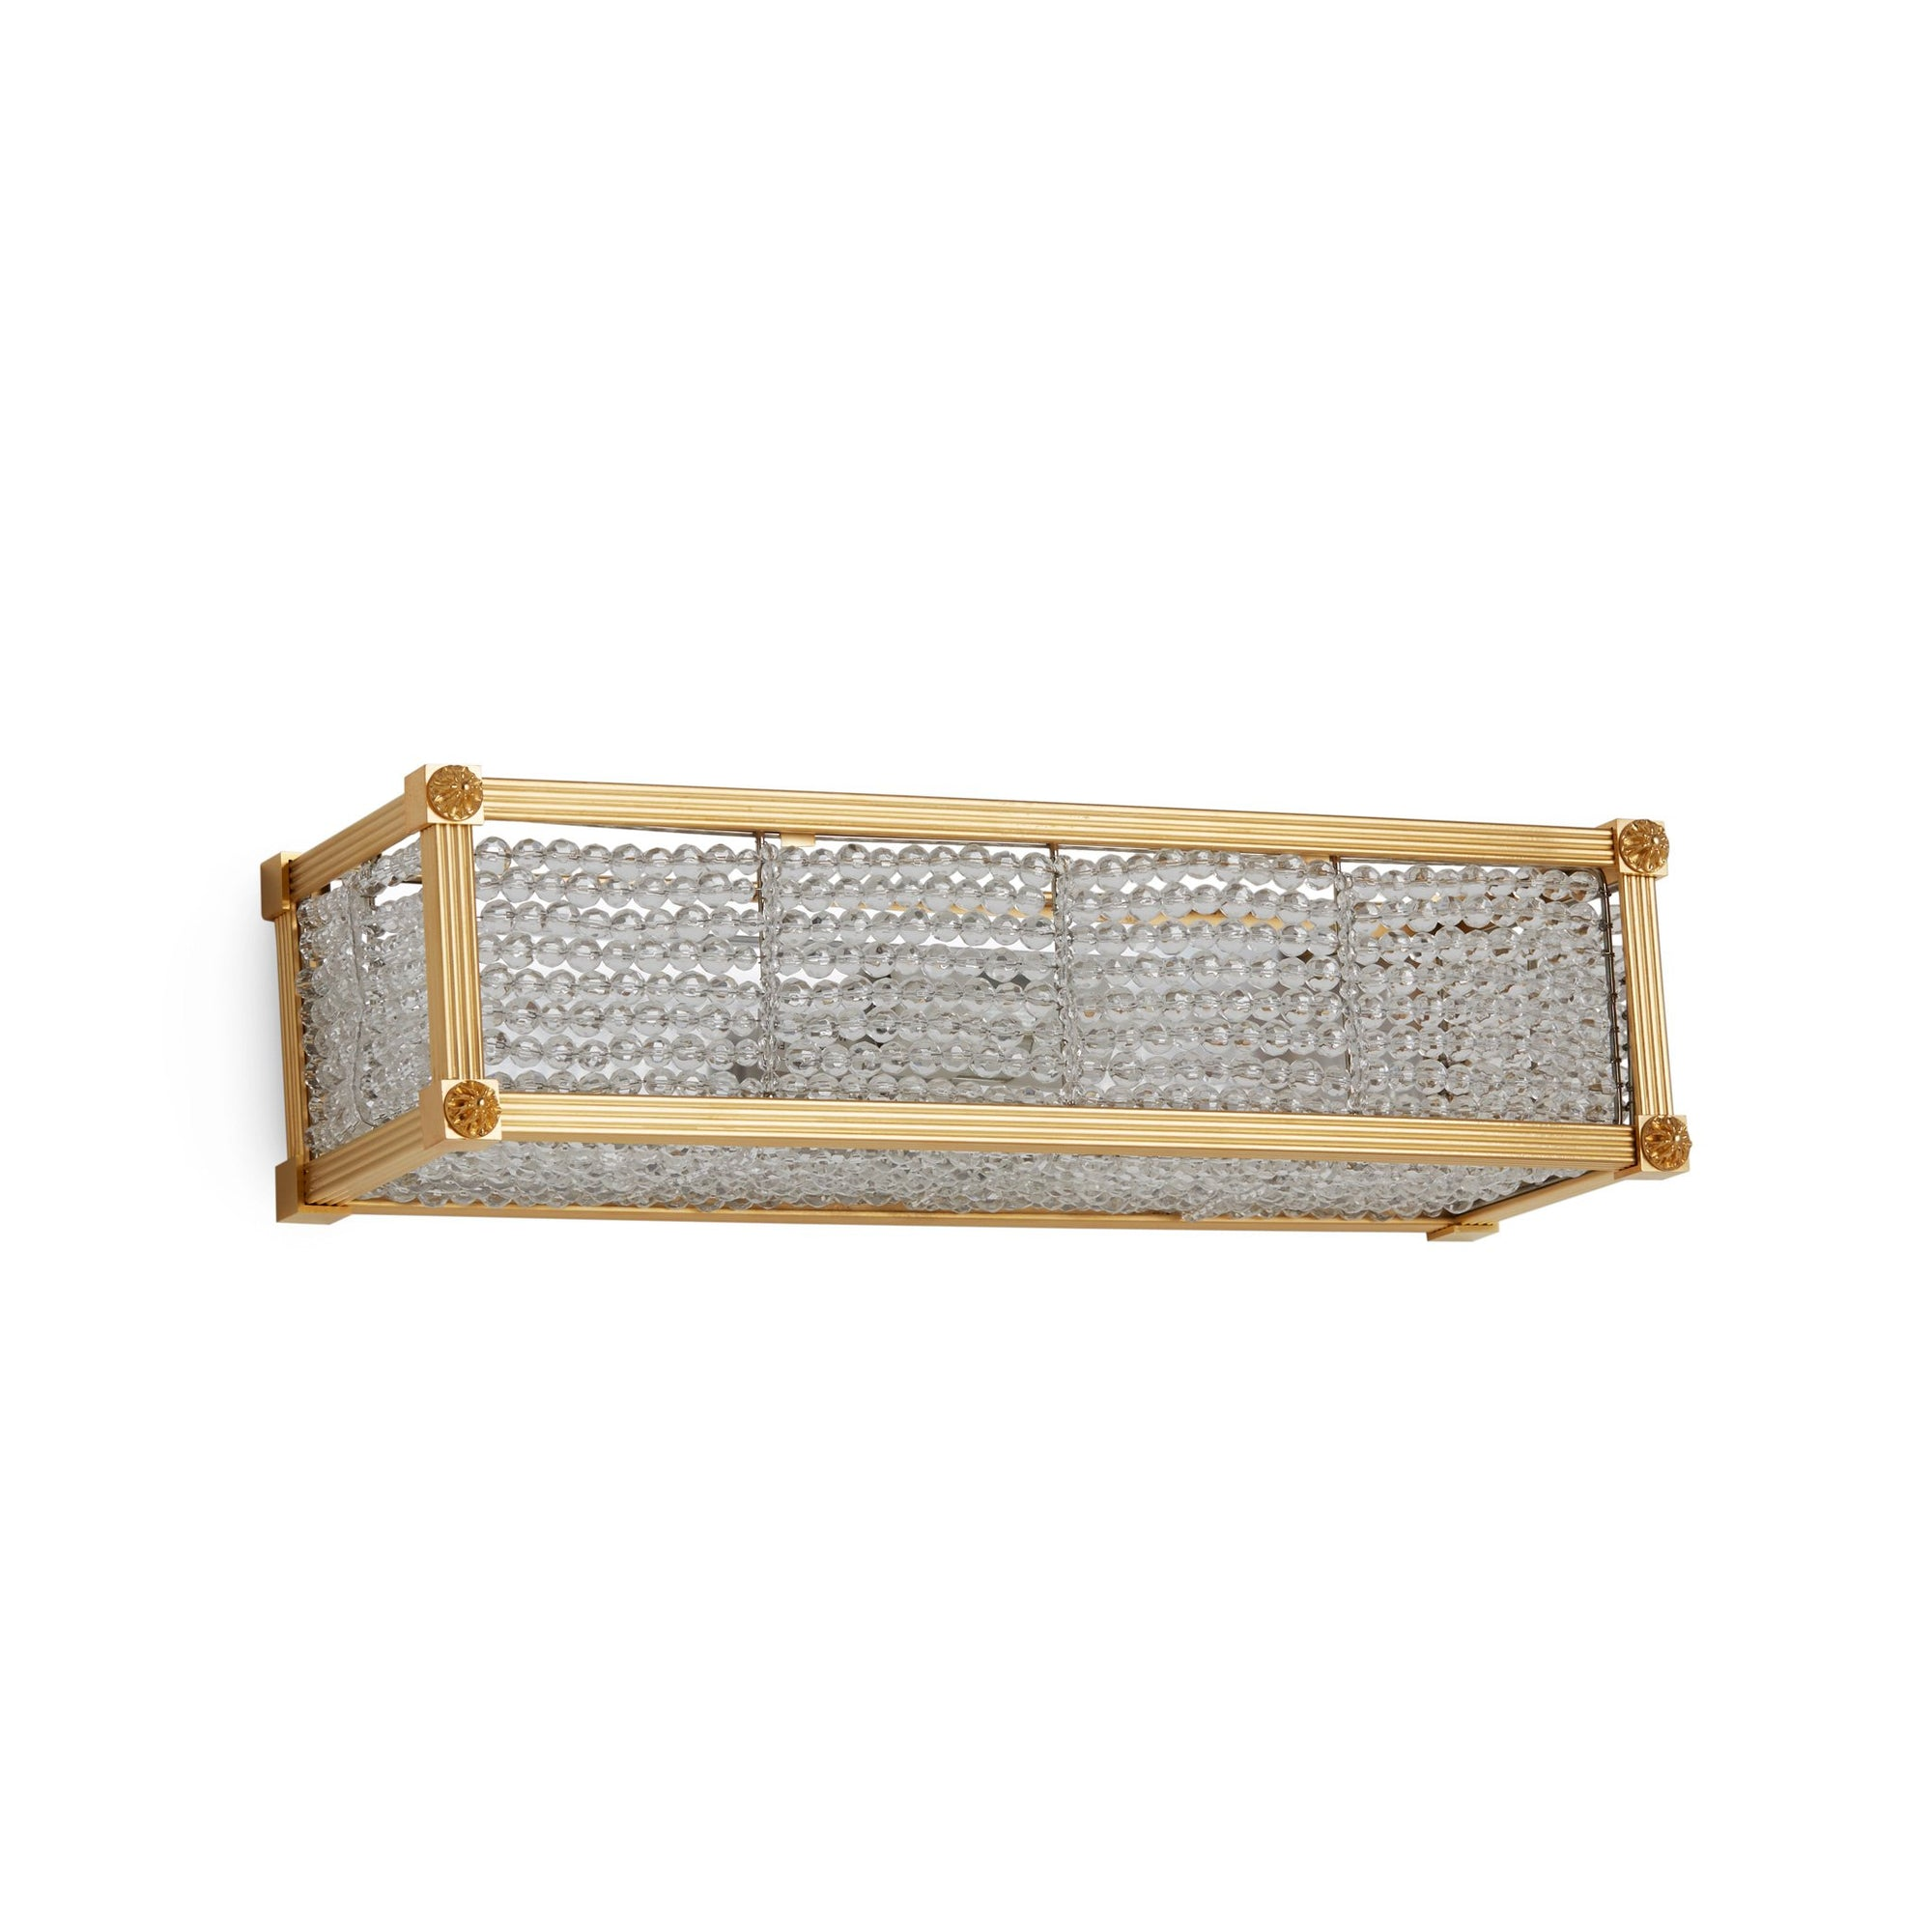 7107CB-16-GP Sherle Wagner International Reeded with Rosette Crystal Beaded Panel Light in Burnished Gold metal finish